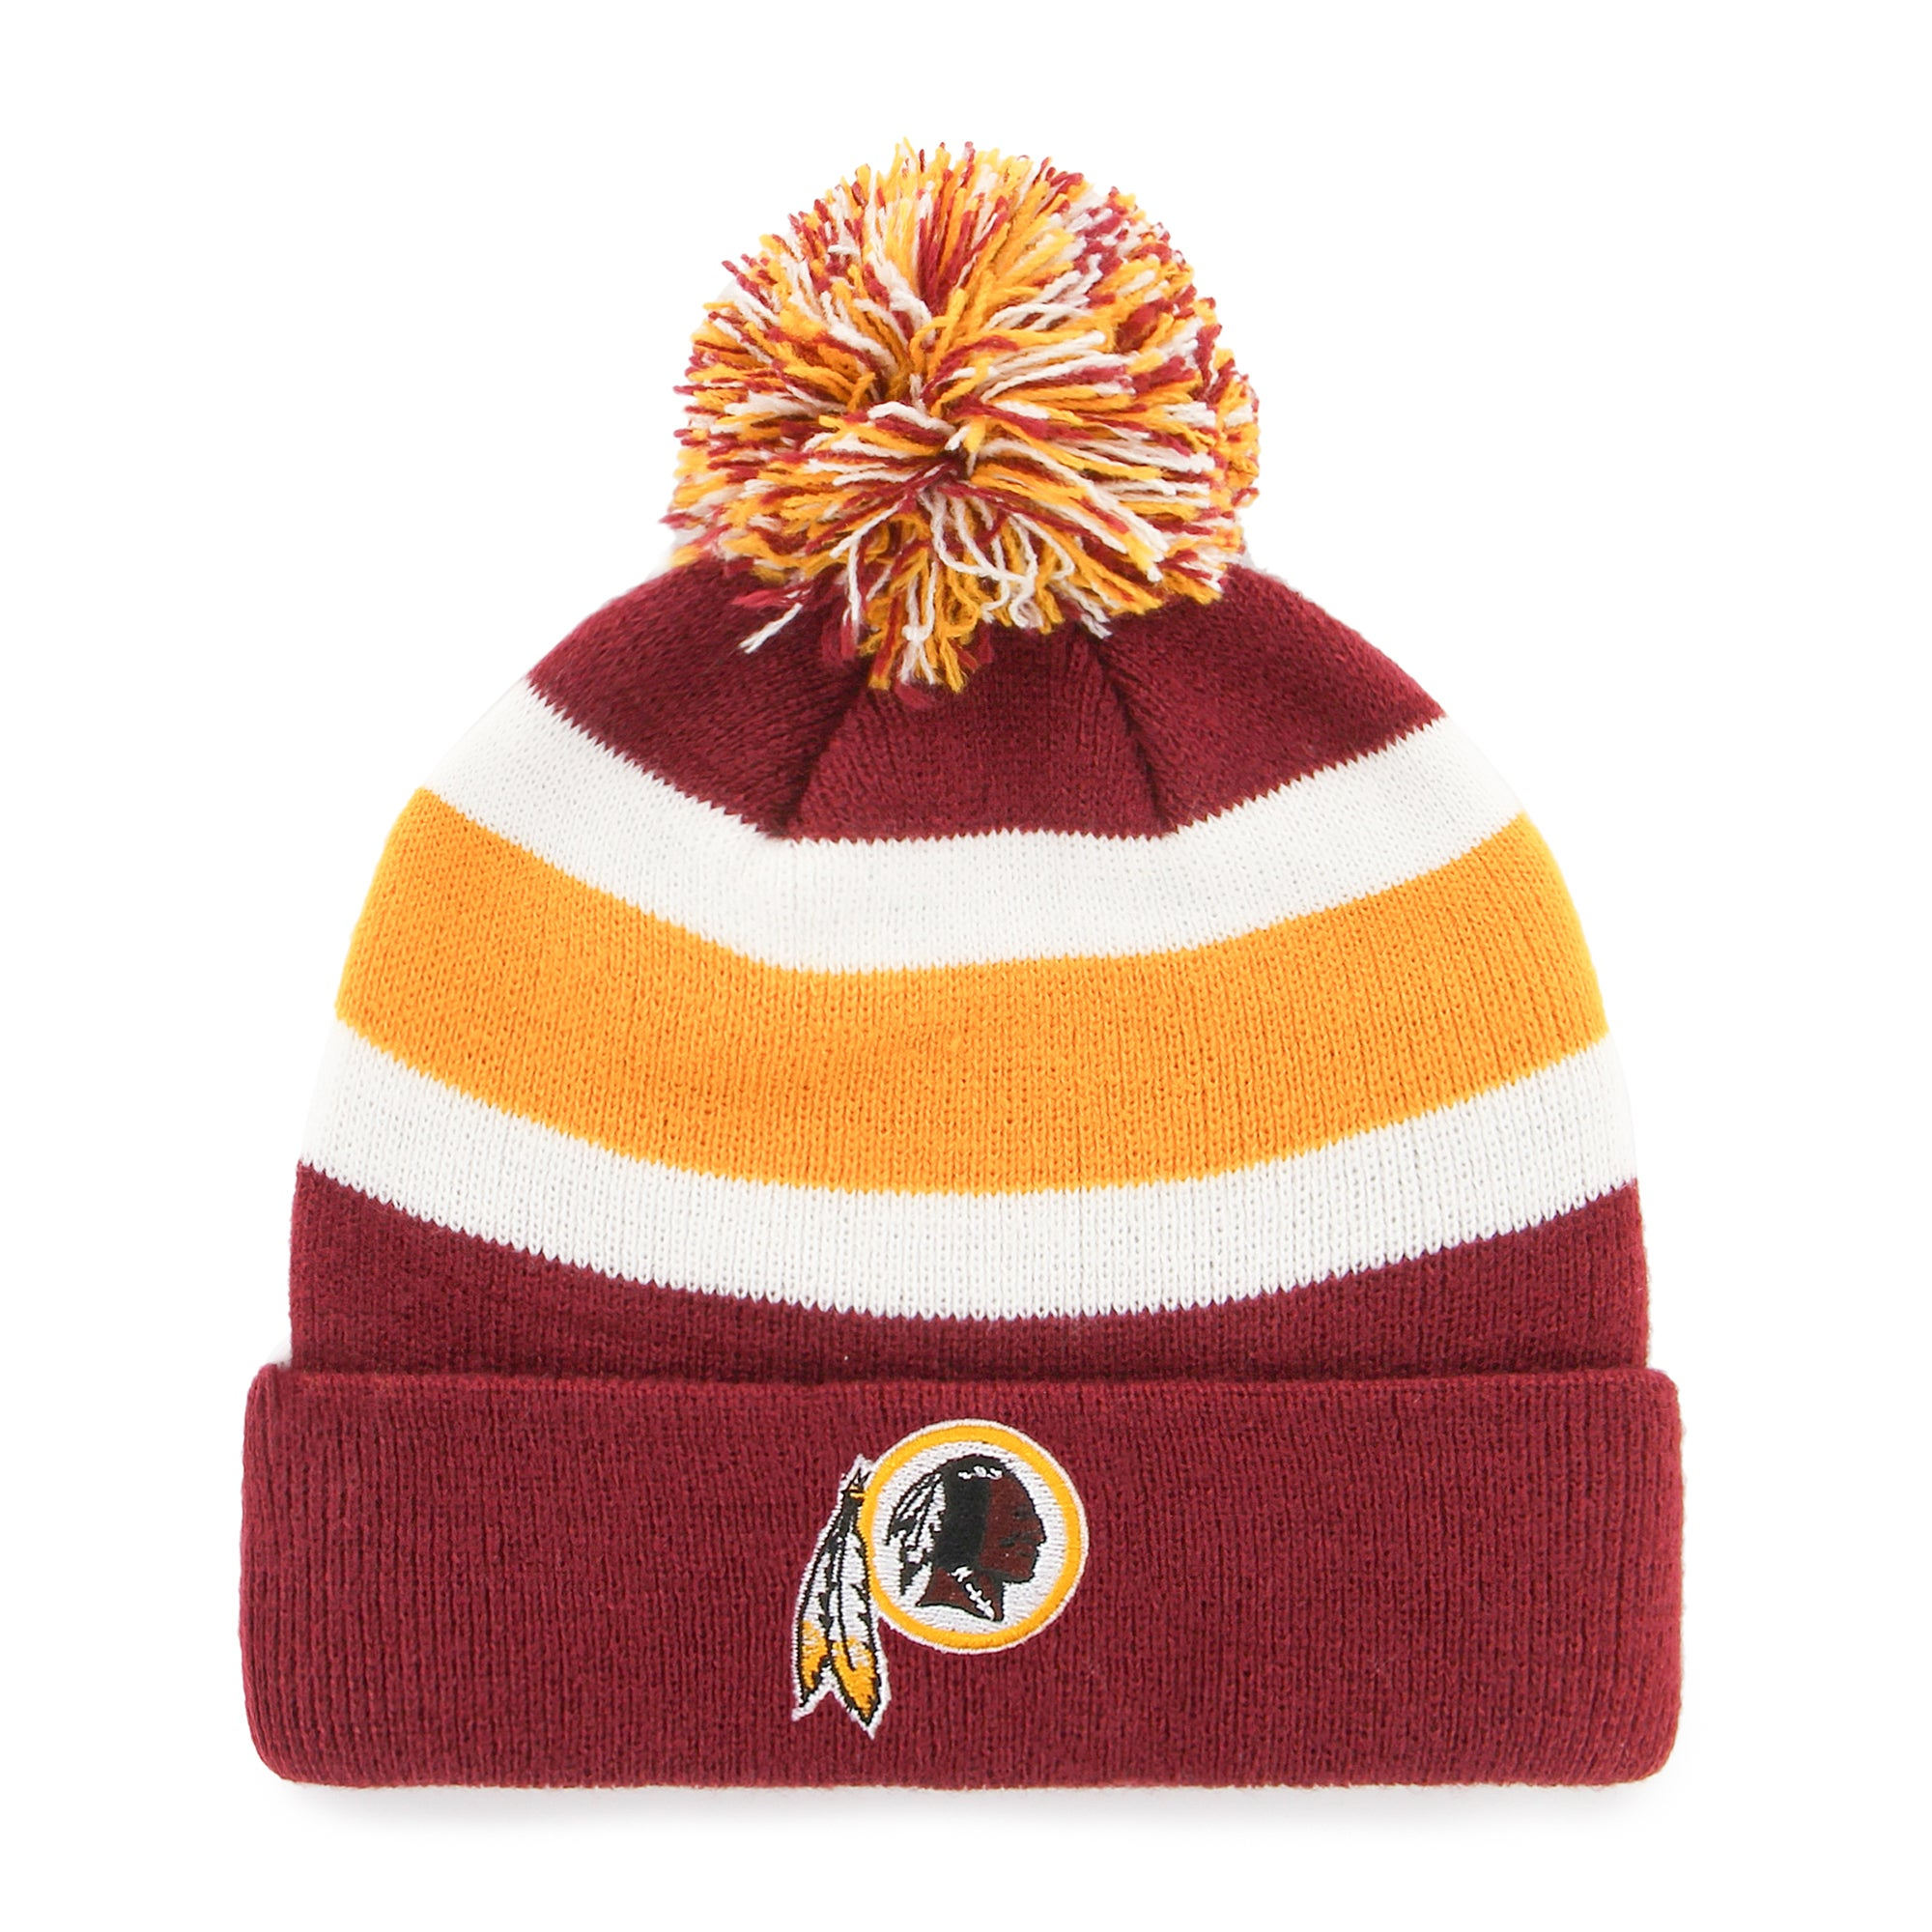 b121094193d Shop Washington Redskins NFL Breakaway Knit Beanie with Pom - Free Shipping  On Orders Over  45 - Overstock - 17771877